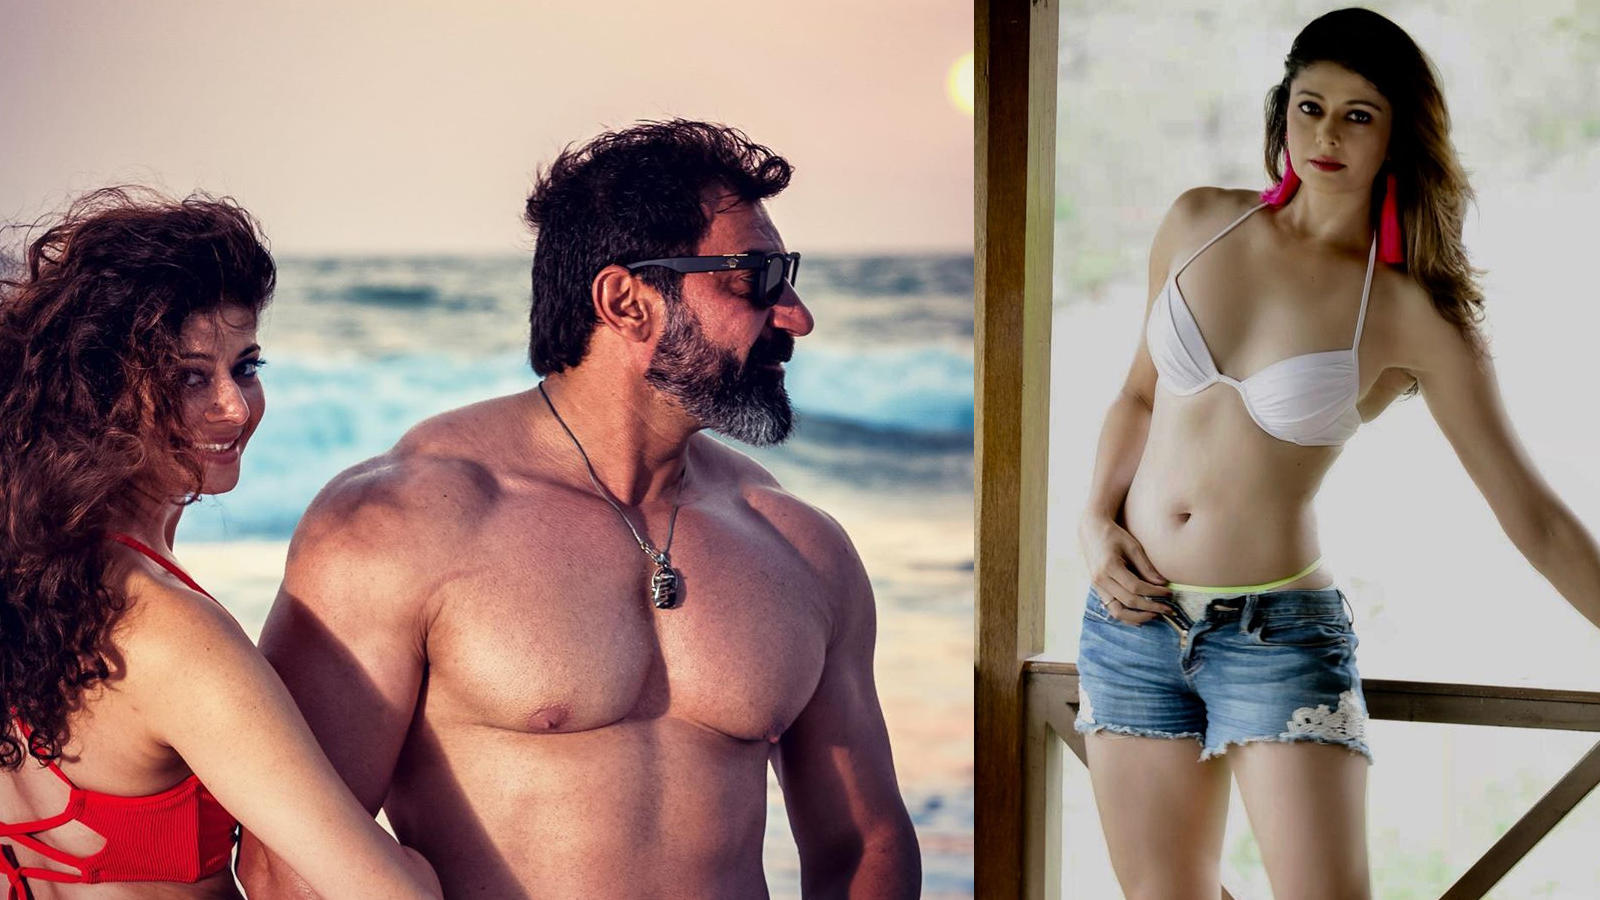 Pooja Batra secretly marries boyfriend Nawab Shah, shares adorable photos